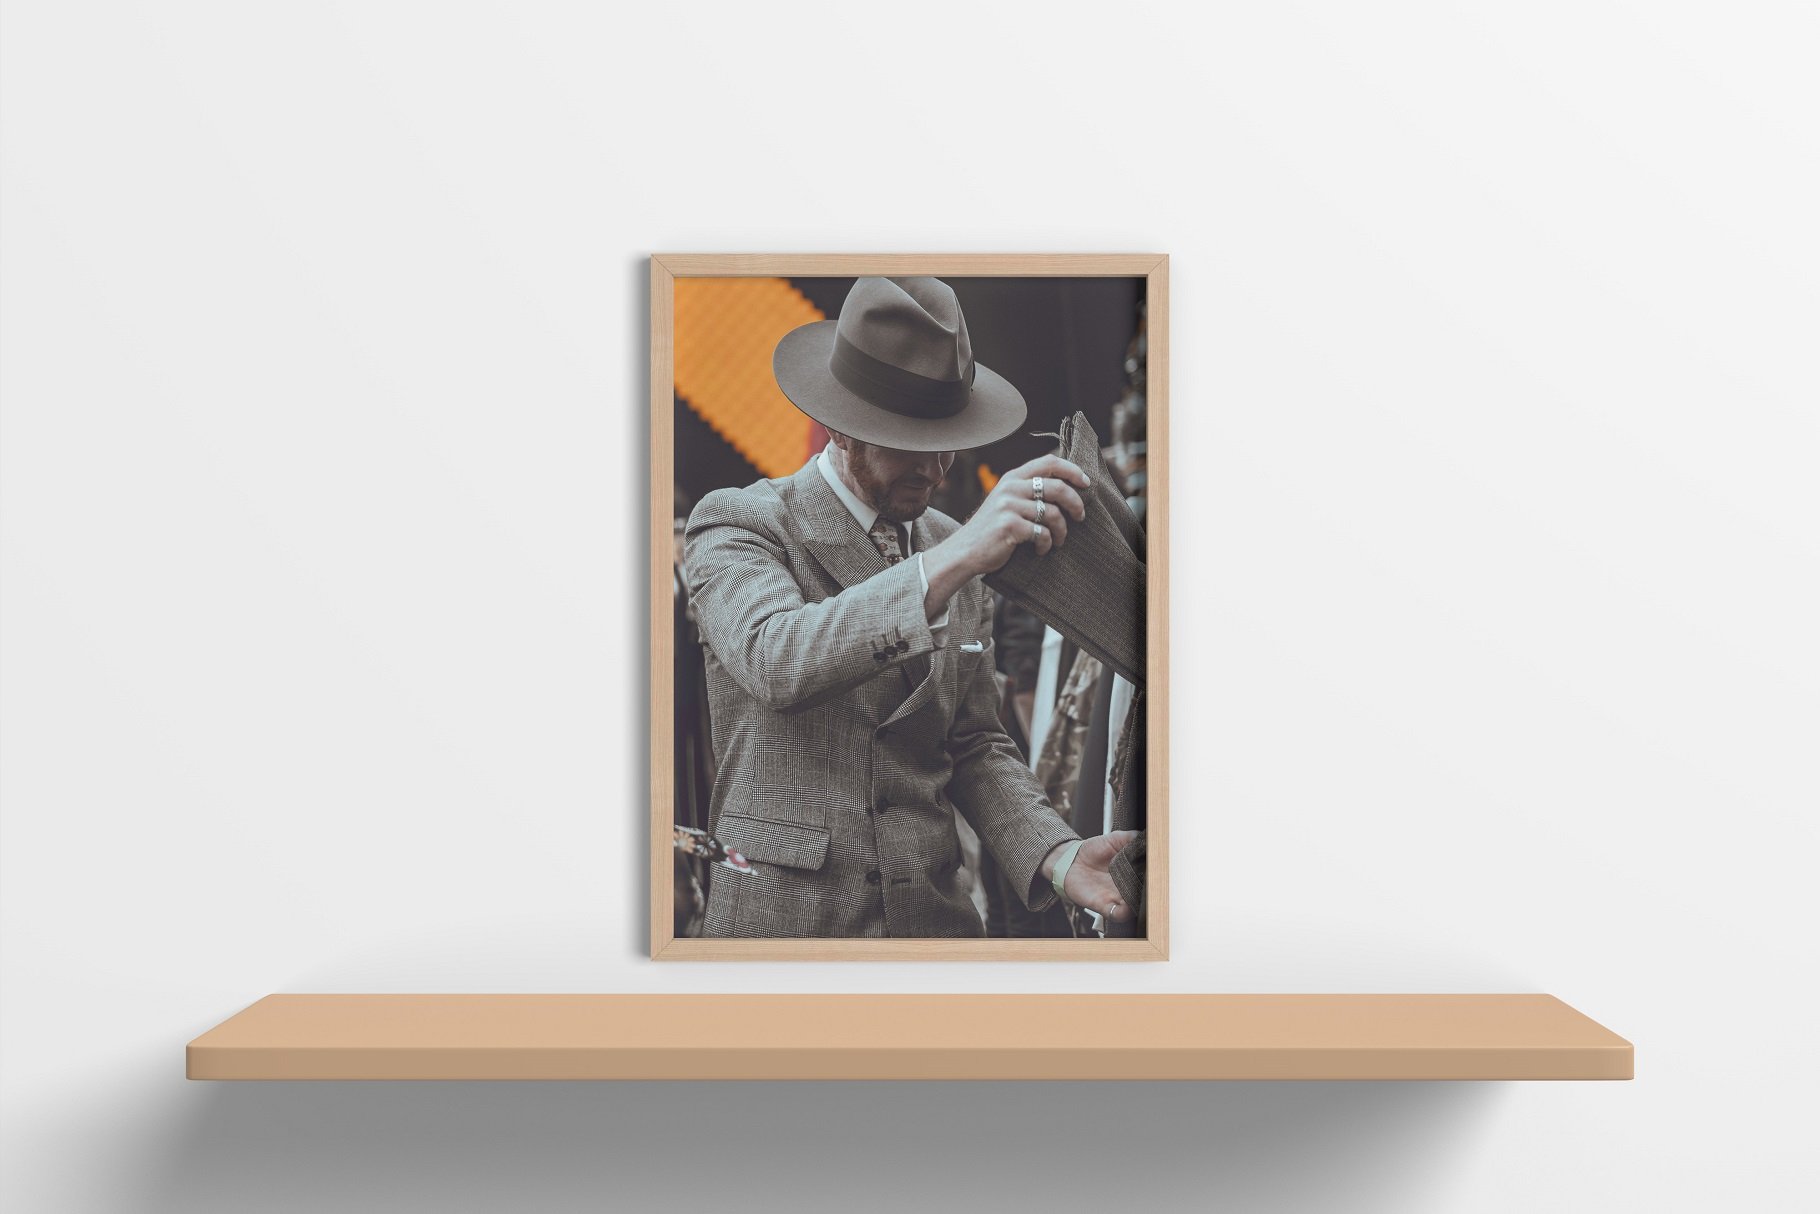 5x7 Inches Photo Frames Mockups example image 10